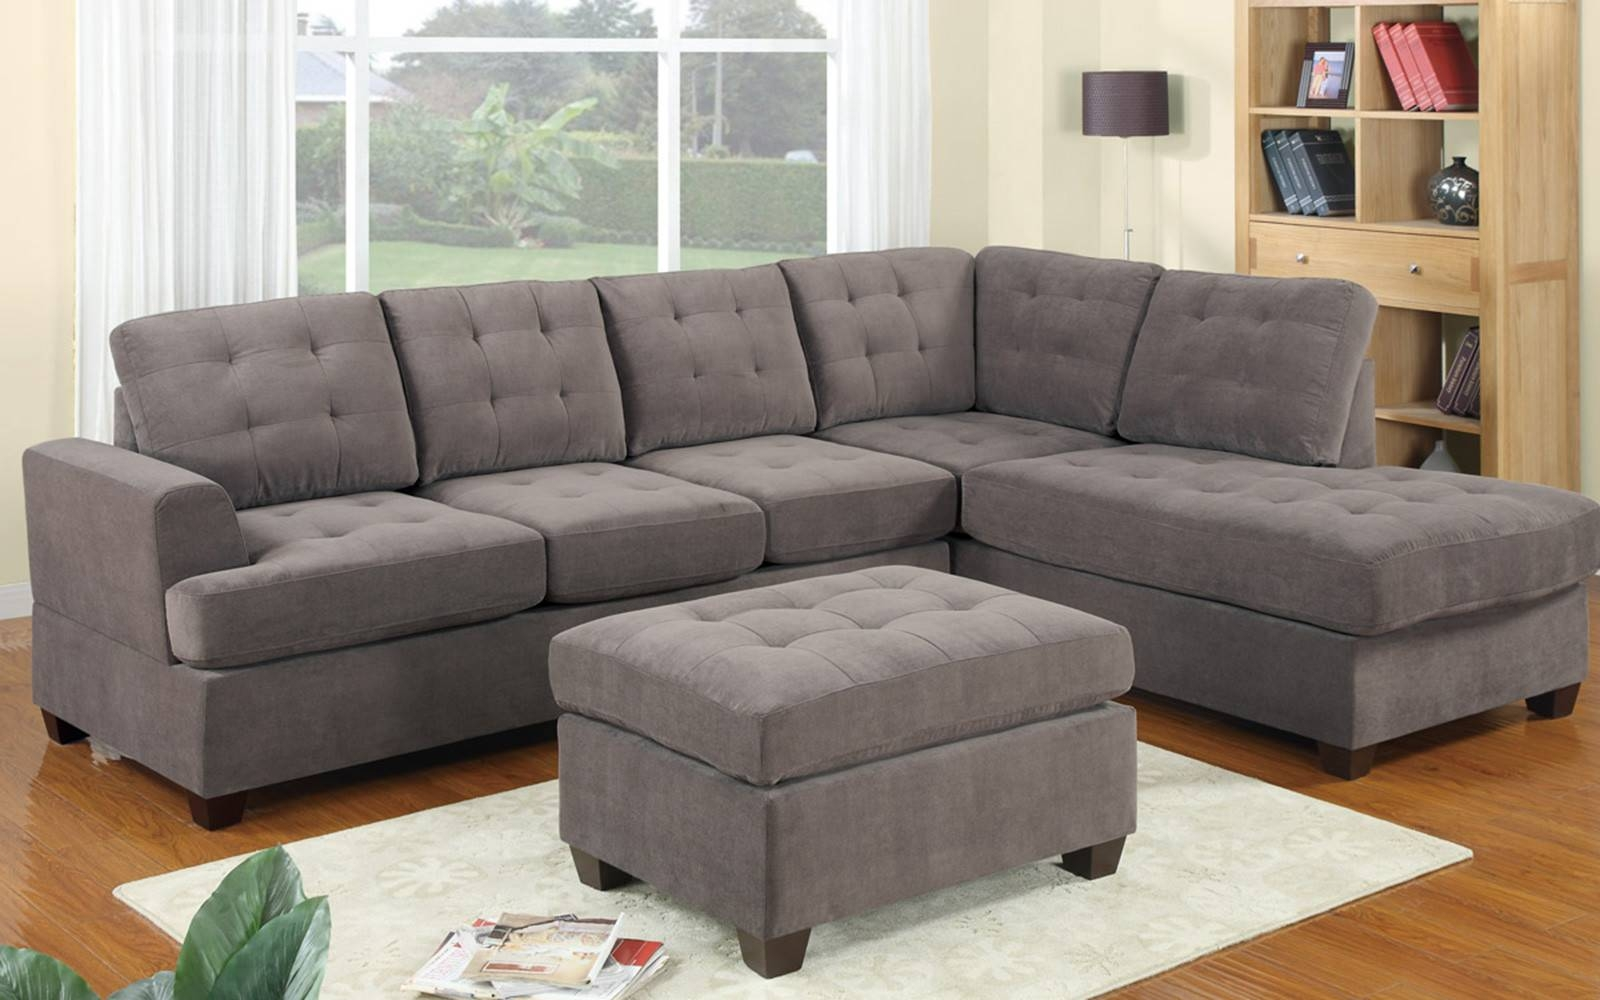 Cheap Sectional Sofas Under 300 - Cleanupflorida throughout Convertible Sectional Sofas (Image 4 of 30)